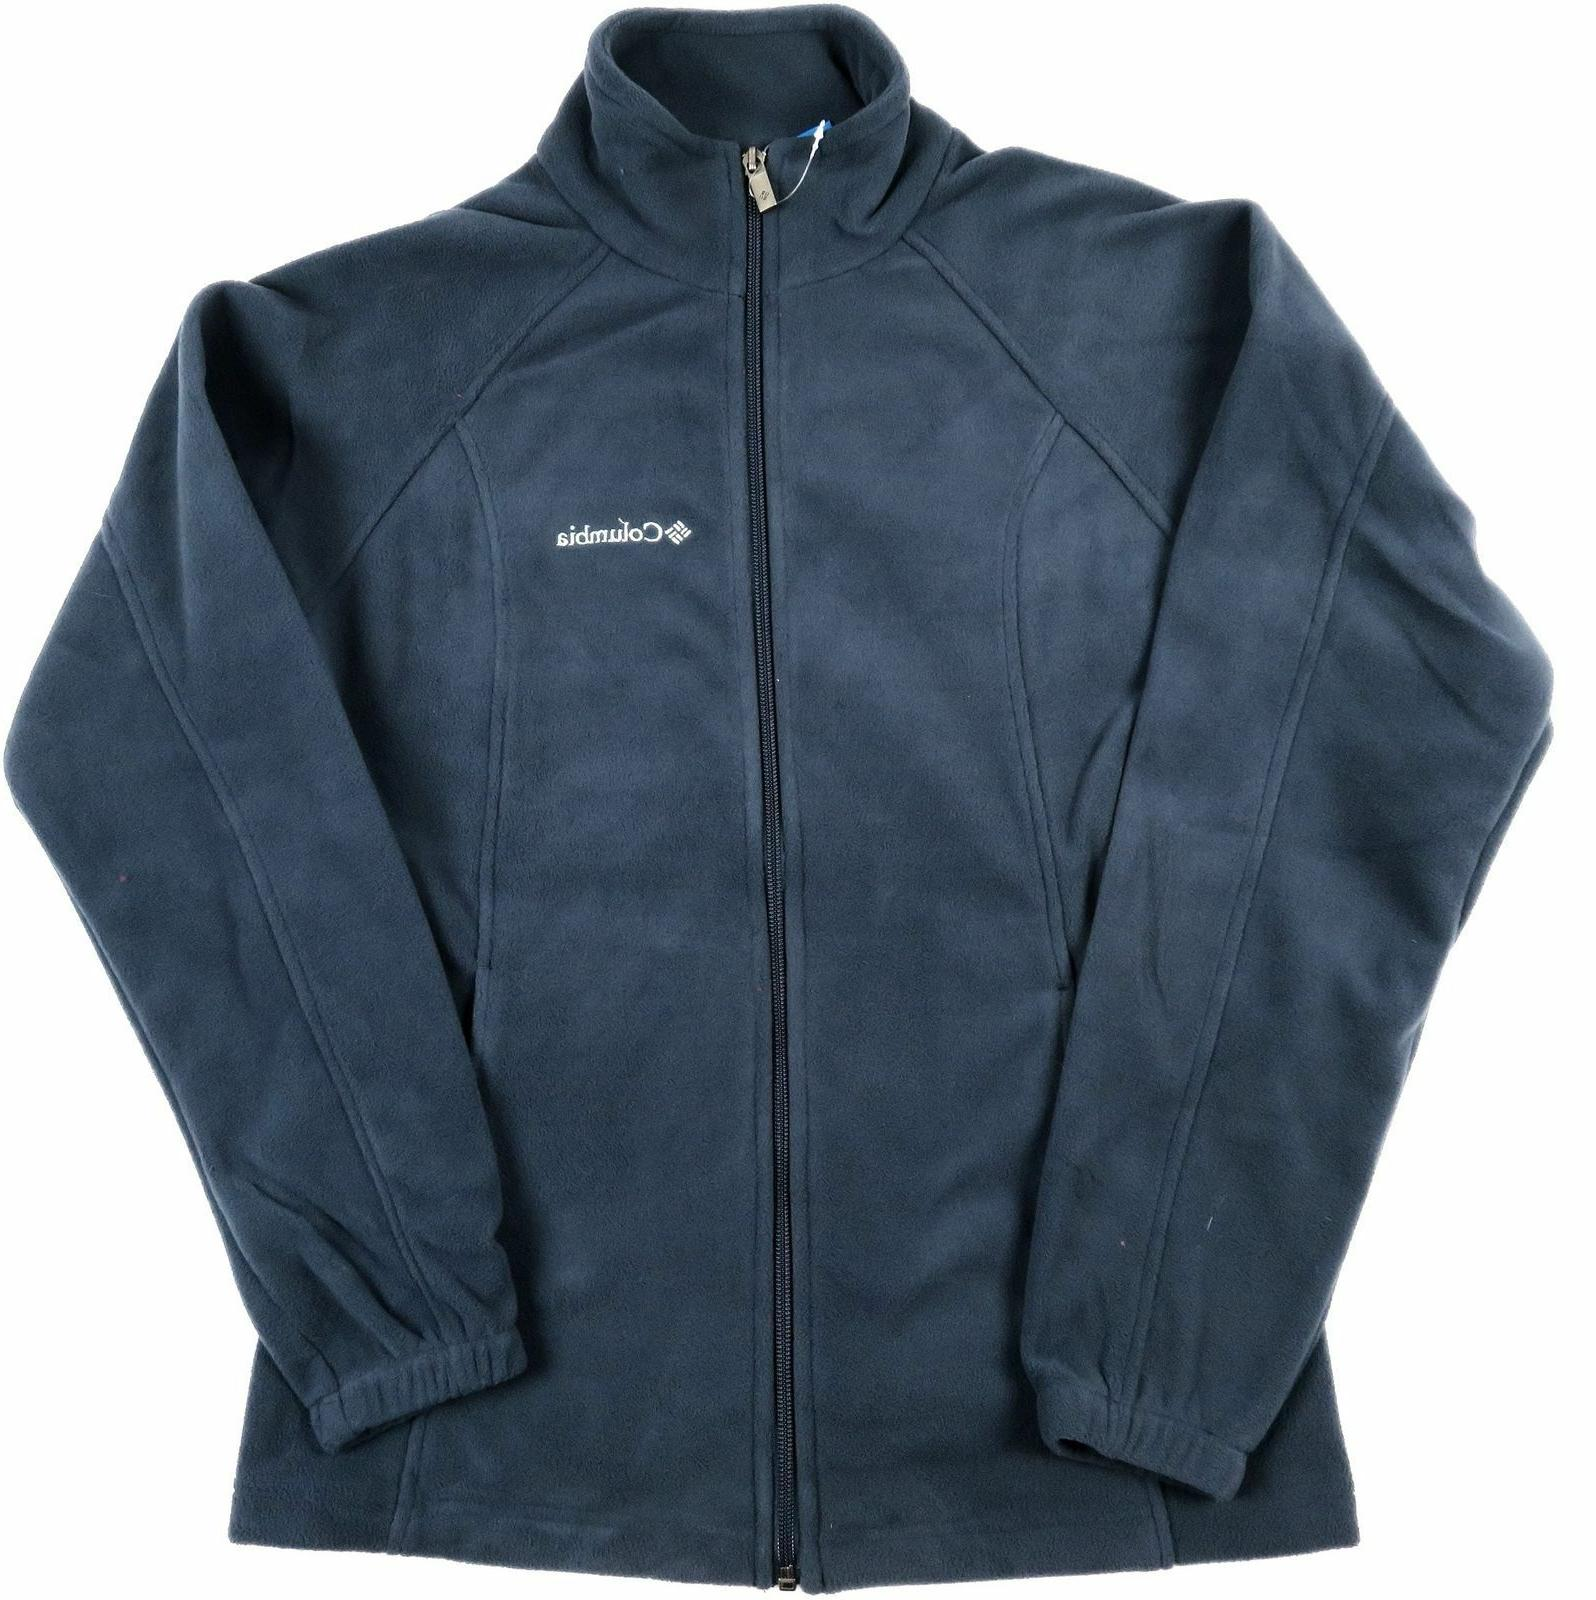 AUTHENTIC WOMEN's Full-Zip Jacket